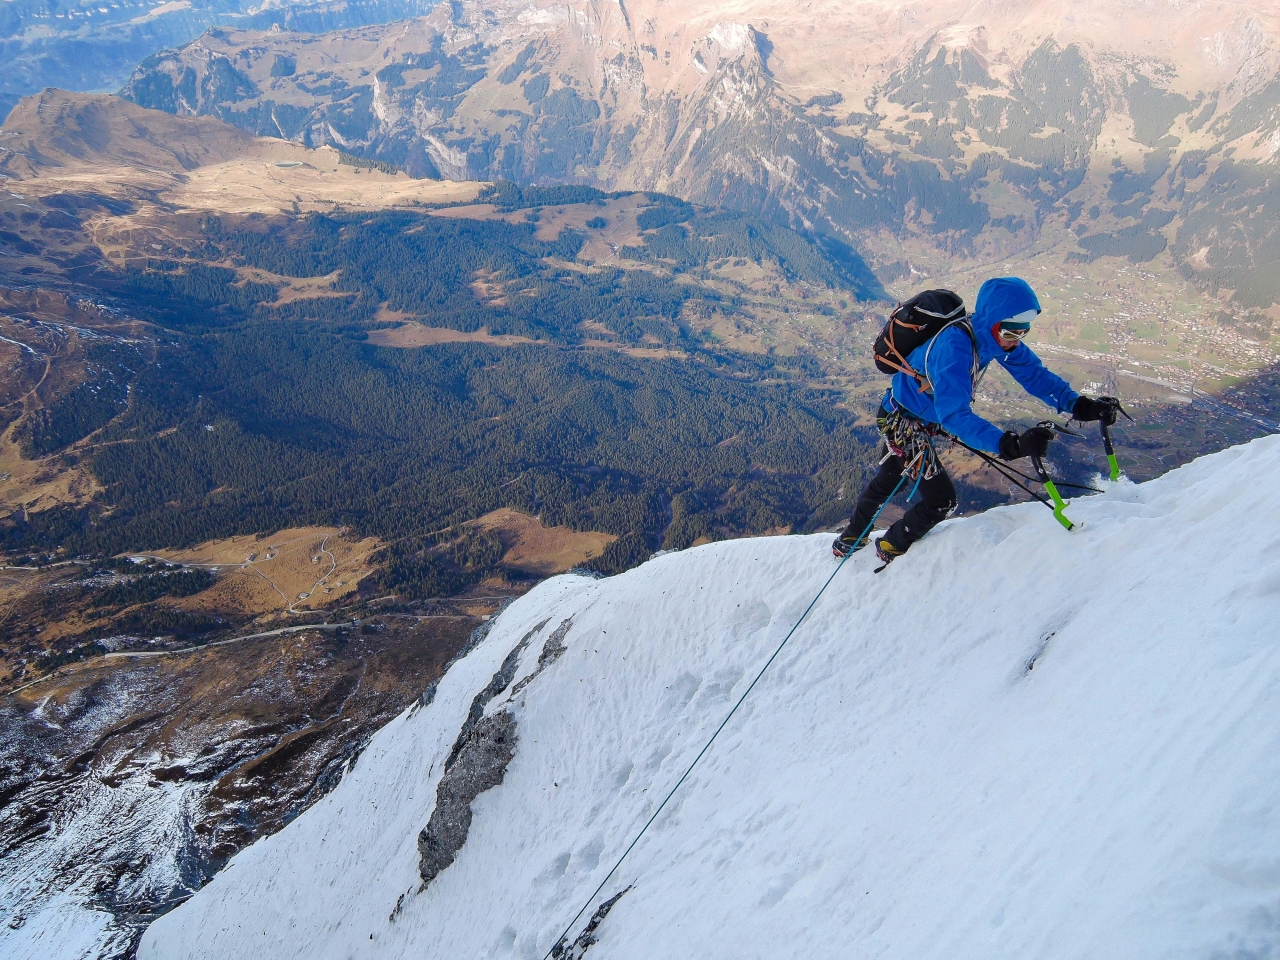 A picture from Eiger by Morgan Baduel